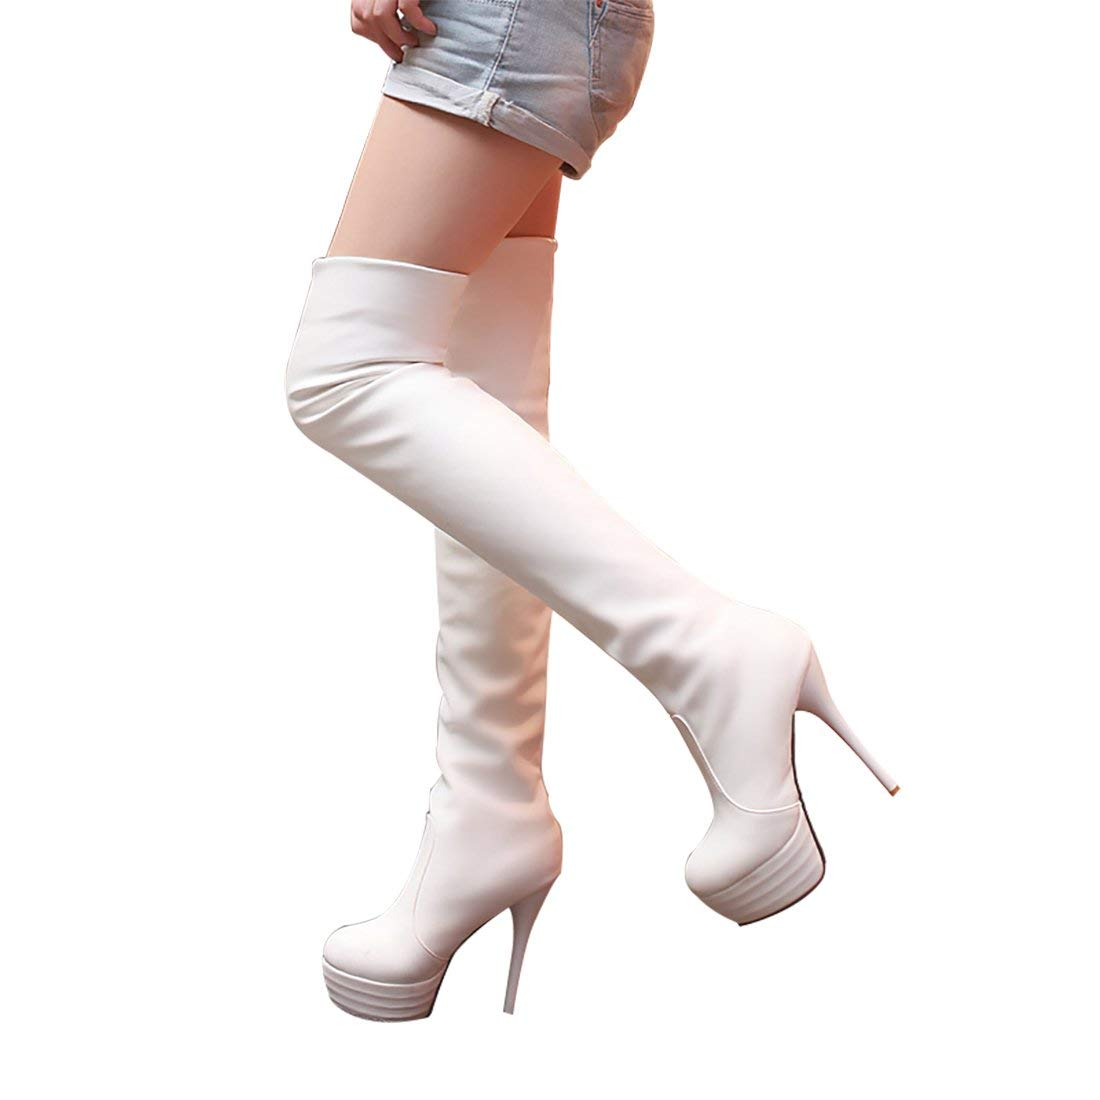 9227f83be Get Quotations · Mostrin Womens Over Knee Thigh High Heel Stretch Boots  Pointed Toe Faux Leather Pull On Sexy